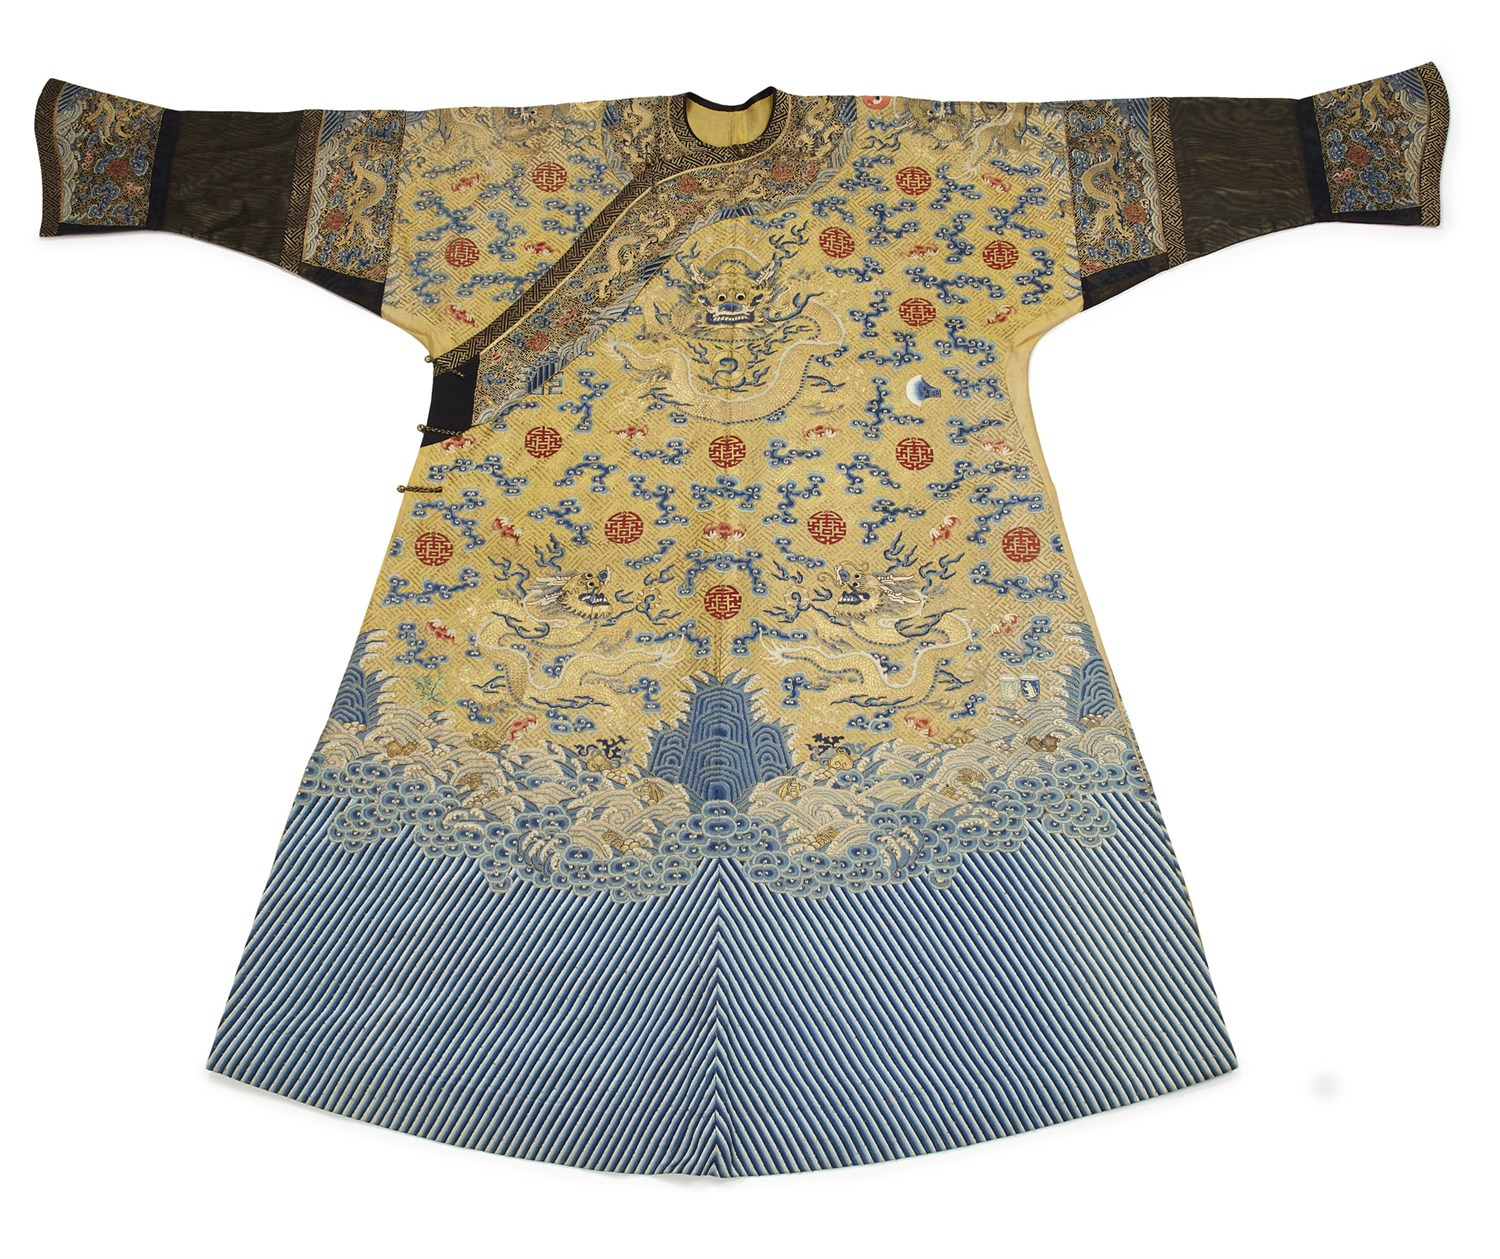 446 - RARE DOWAGER EMPRESS CIXI IMPERIAL TWELVE-SYMBOL FESTIVE SUMMER 'DRAGON' ROBE (LONG PAO)